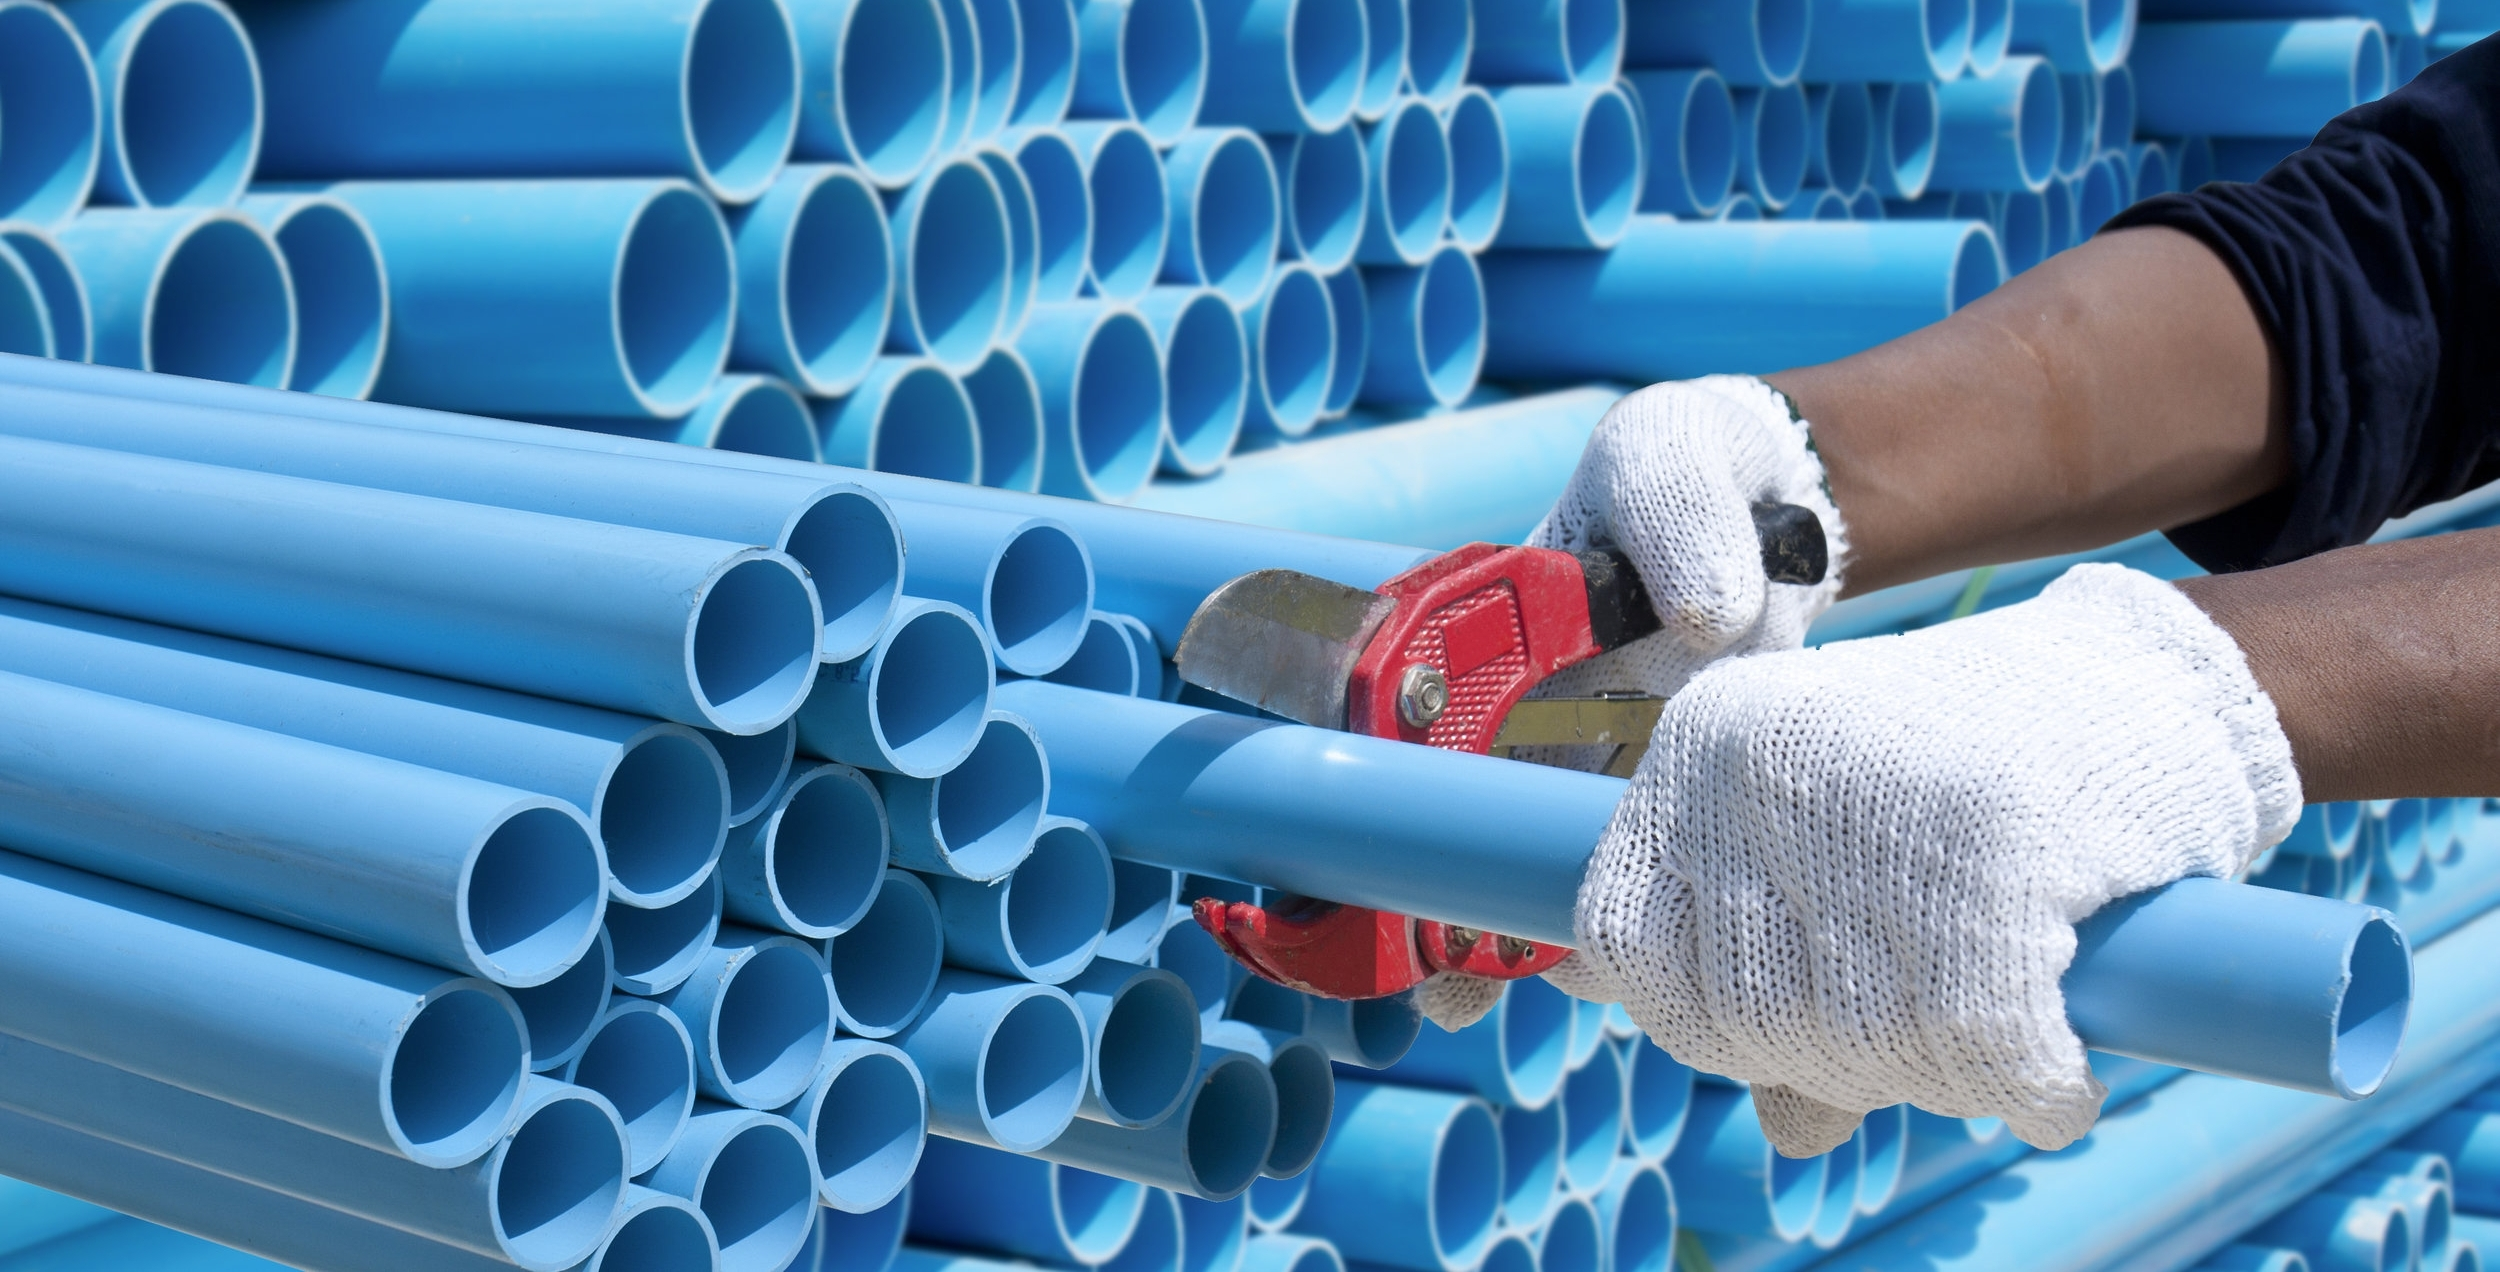 UPVC Pipes and Fittings Malawi